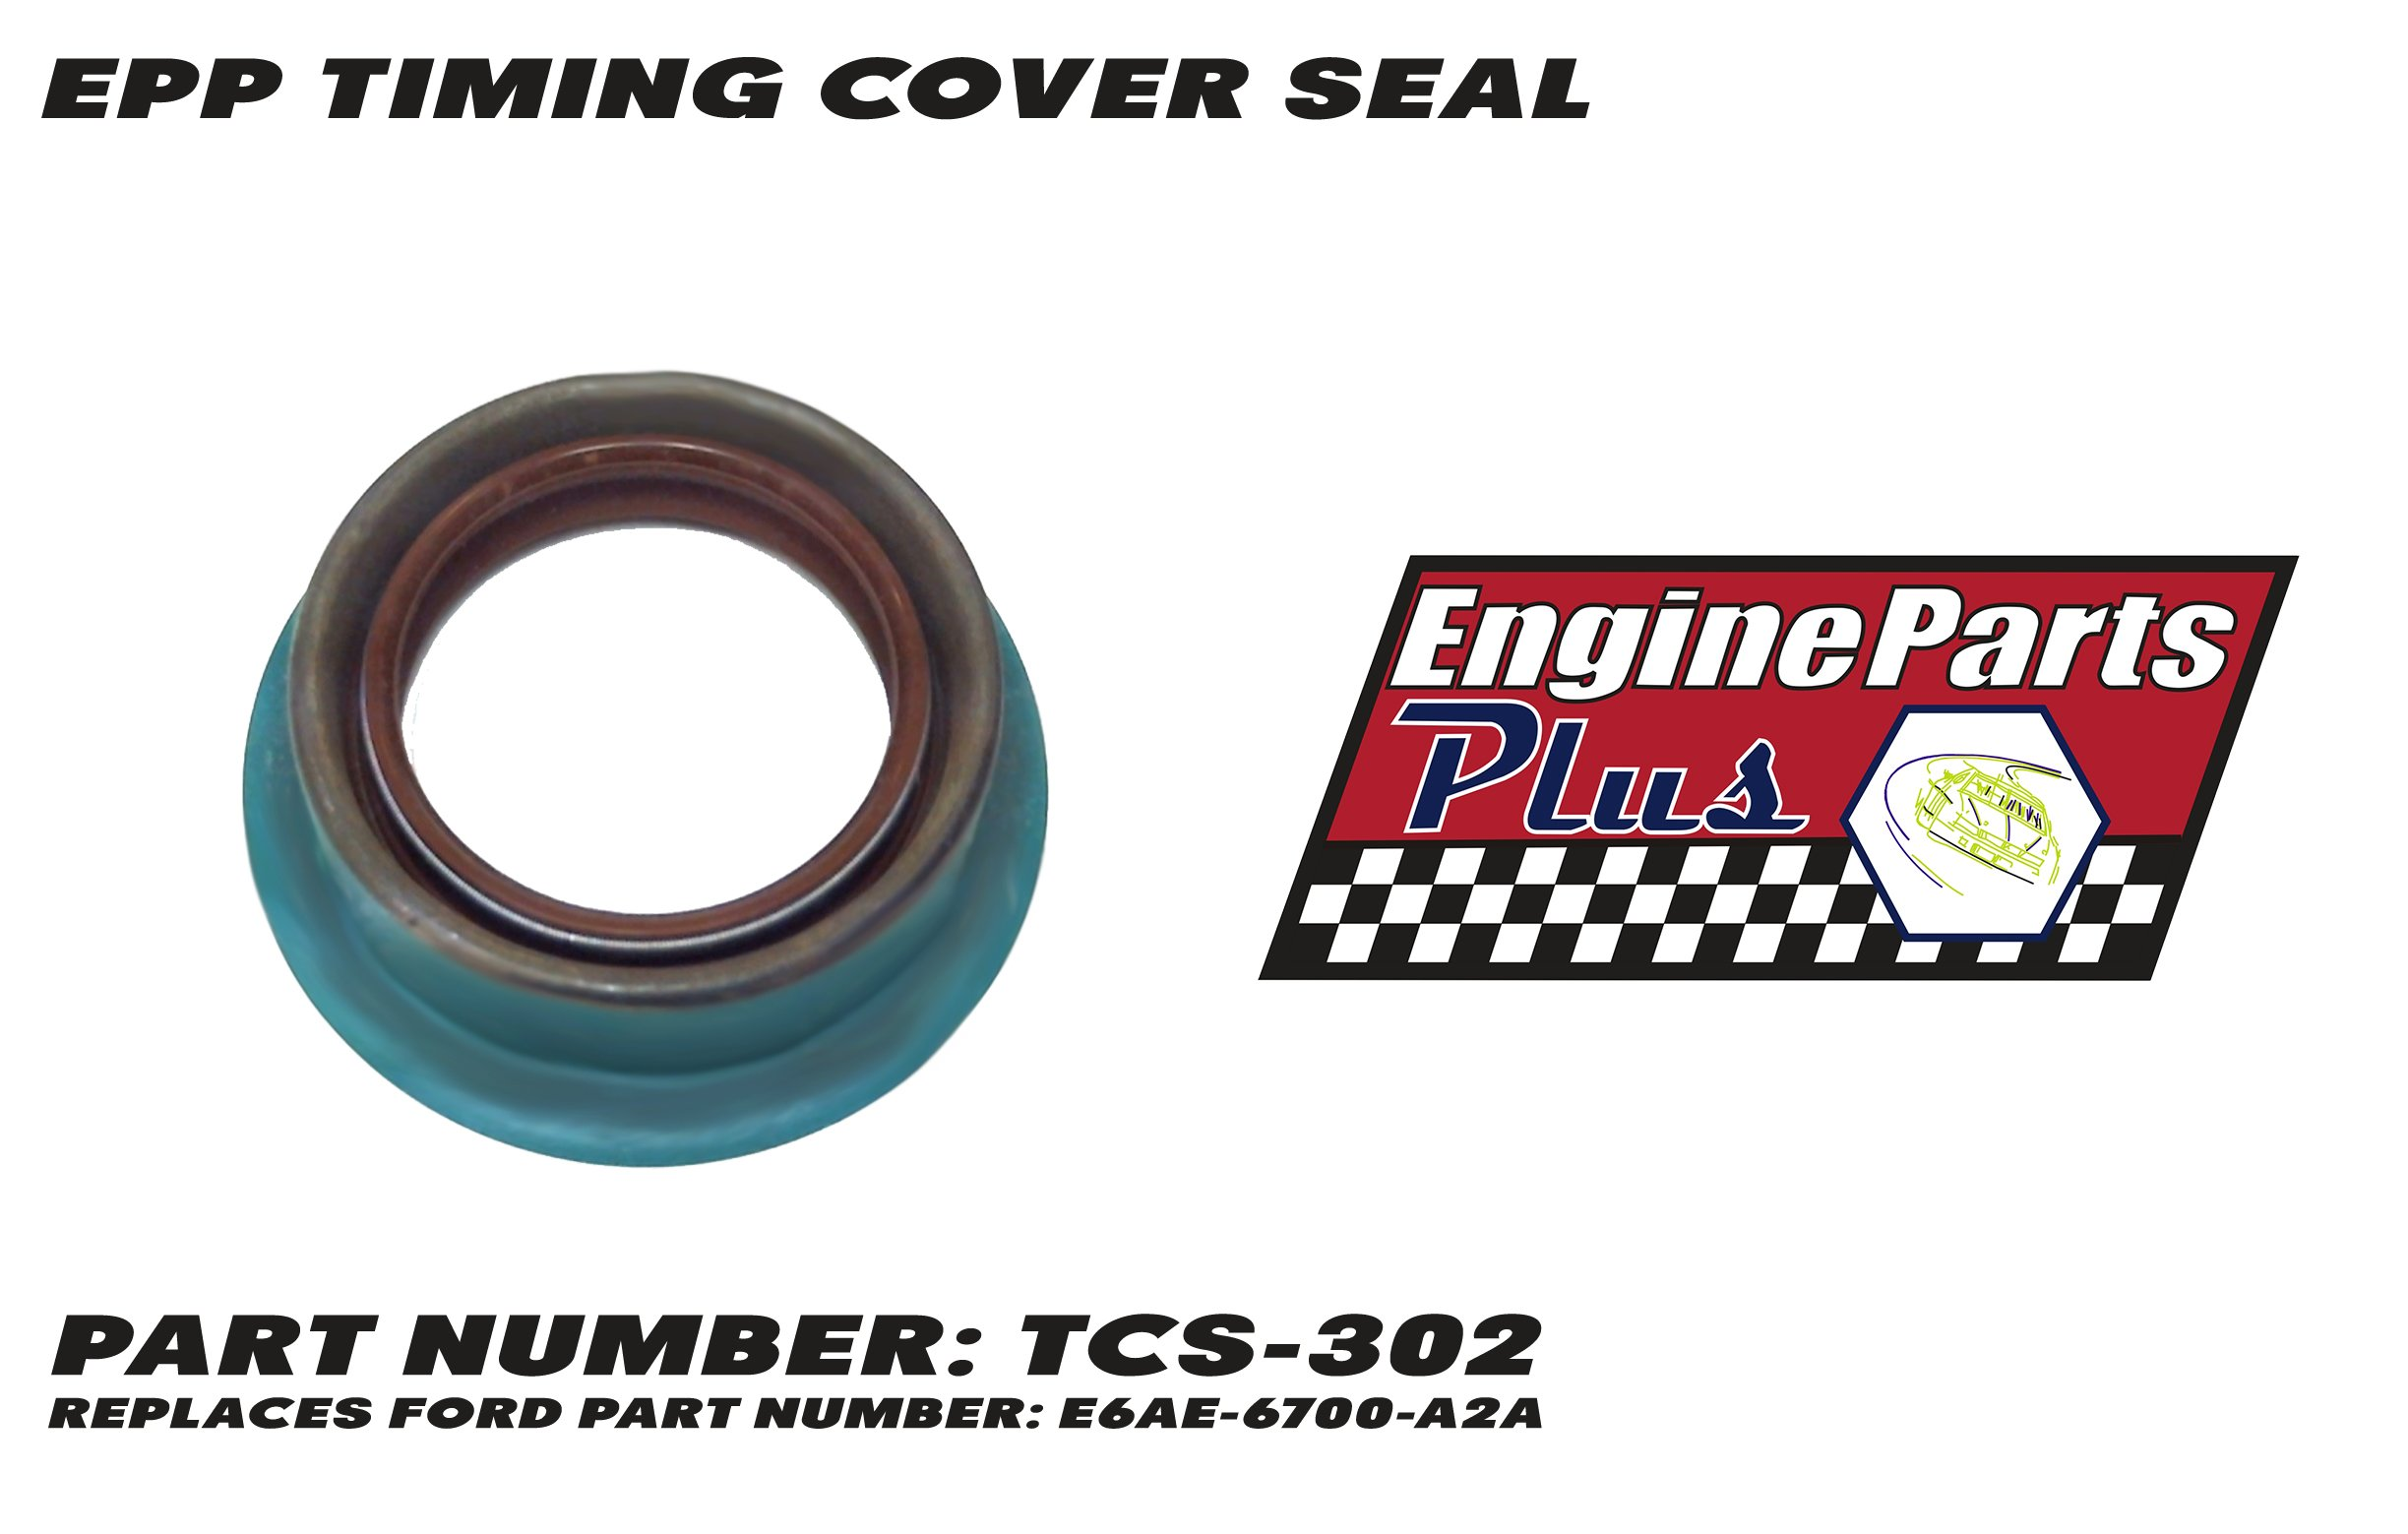 EPP TIMING COVER SEAL PART NUMBER: TCS-302 REPLACES FORD PART NUMBER: E6AE-6700-A2A